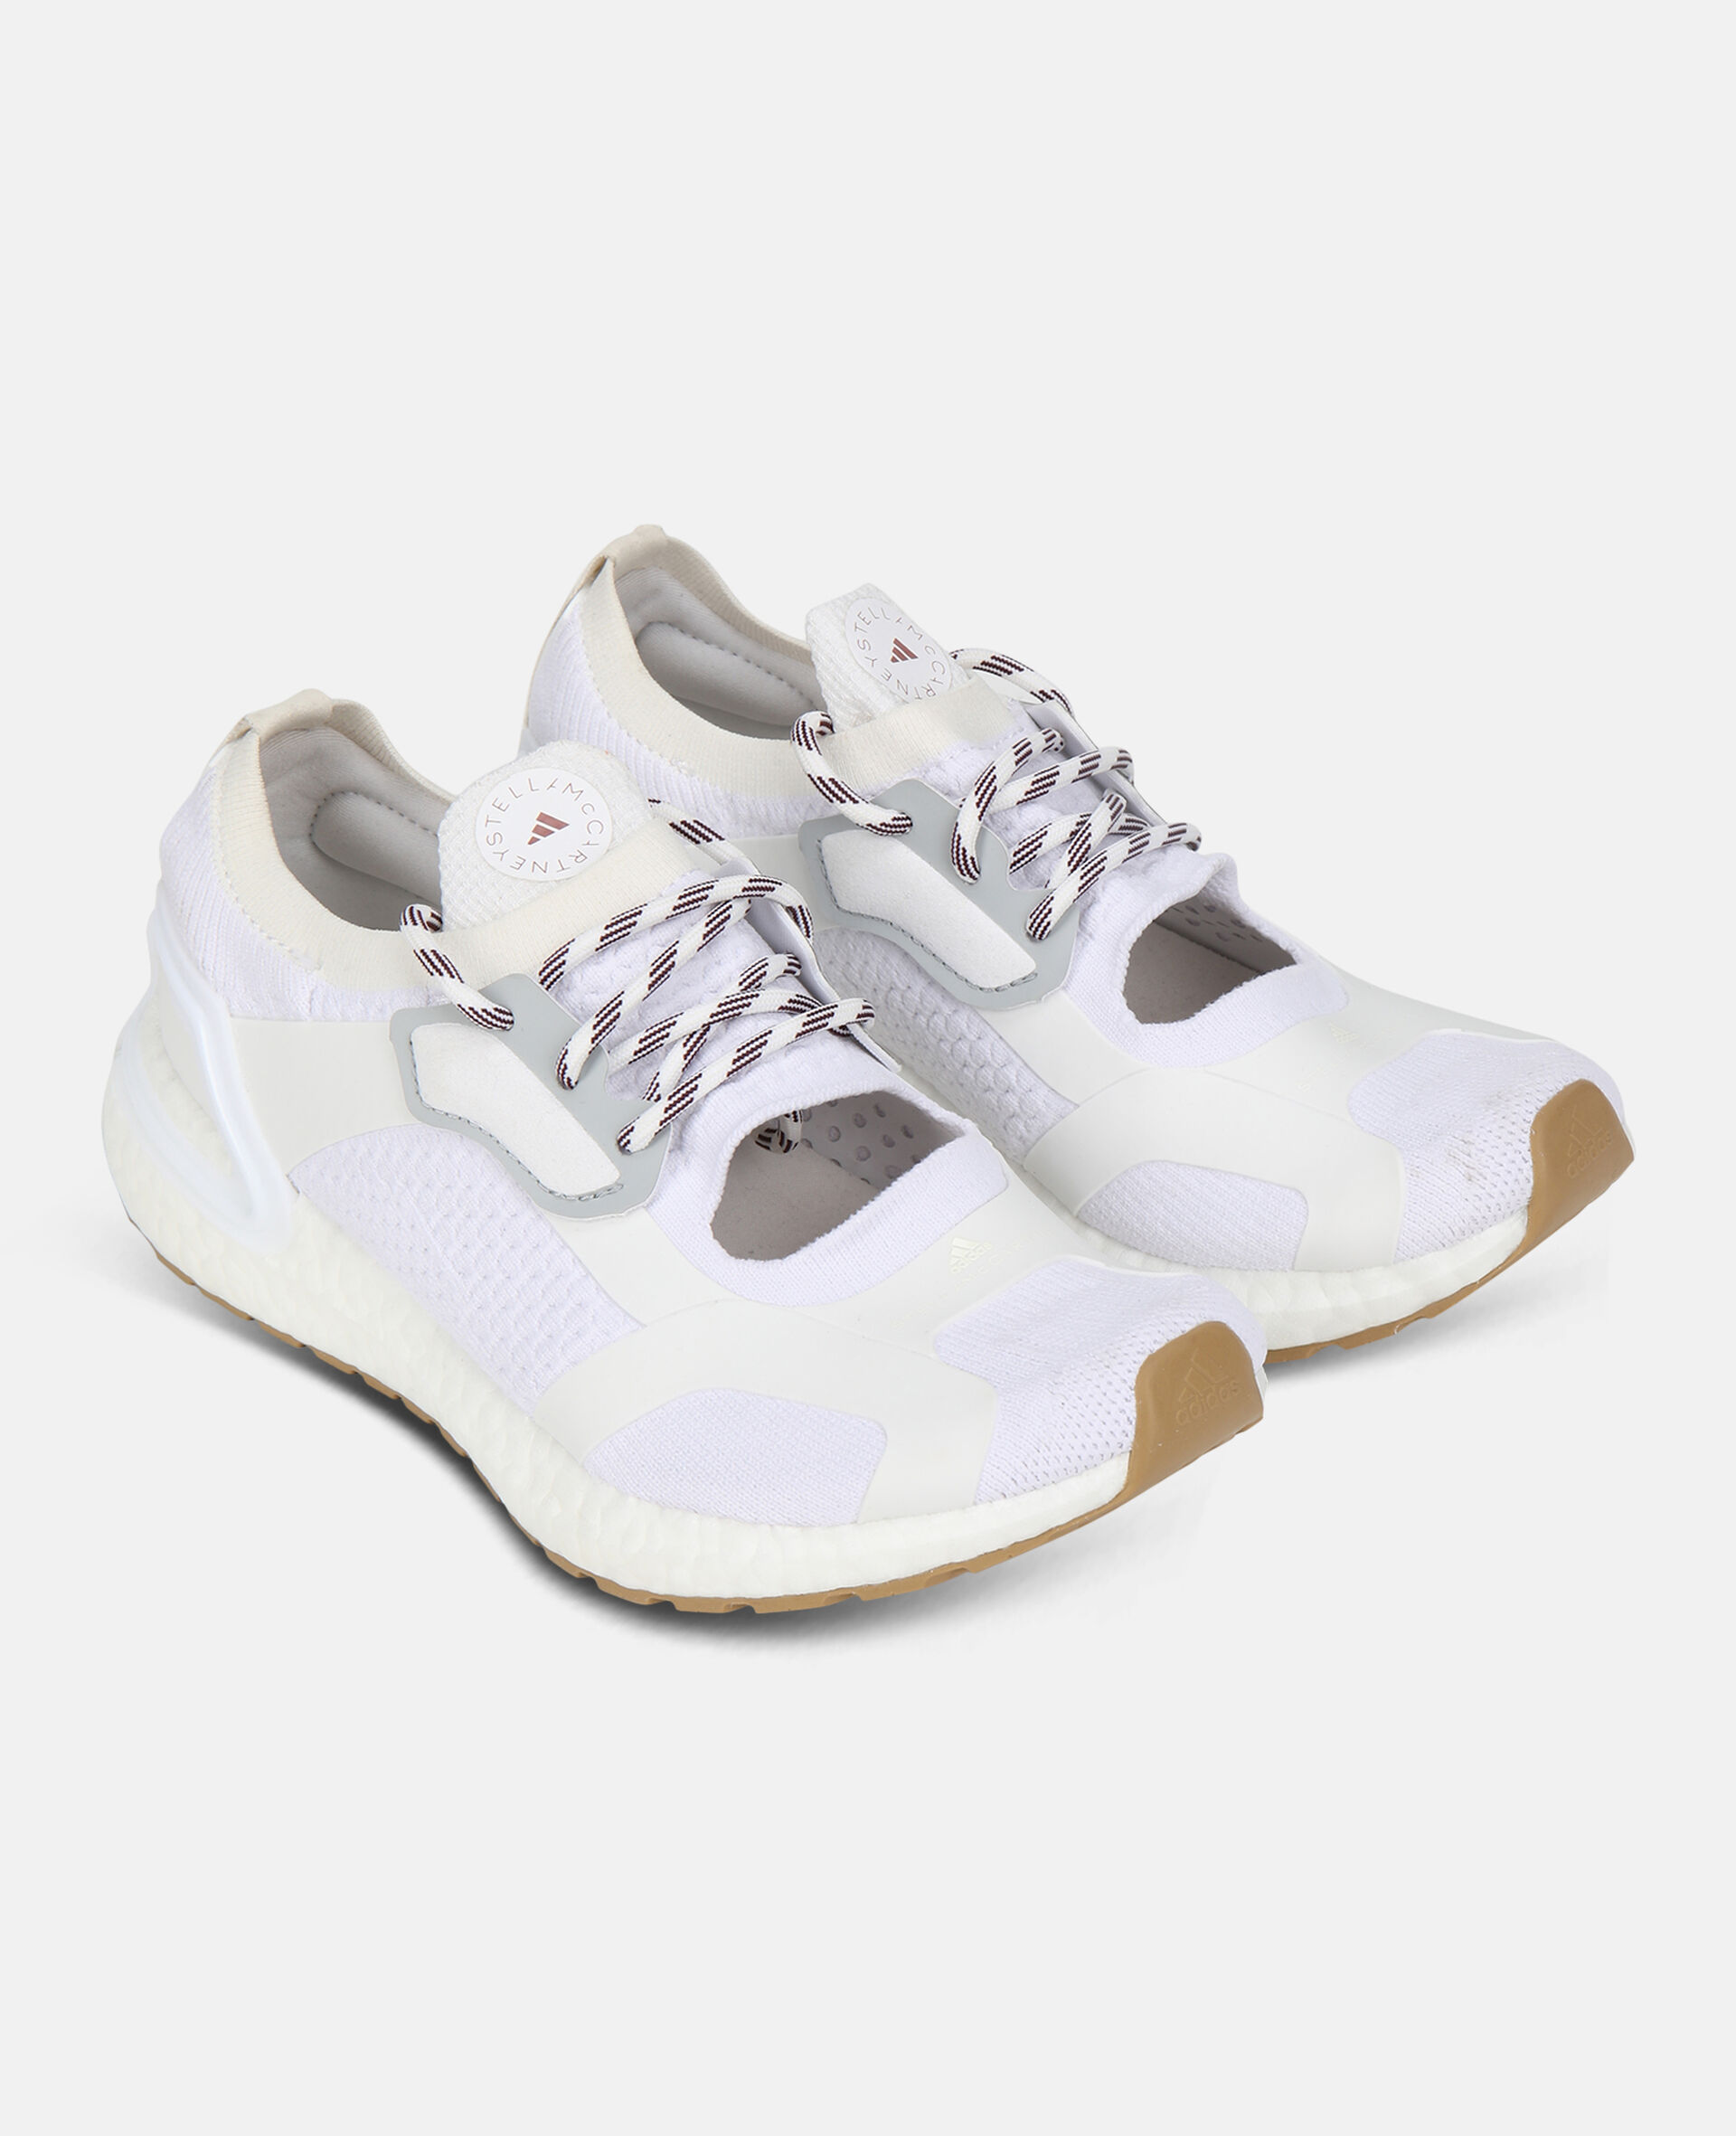 White Ultraboost Sneakers-White-large image number 1